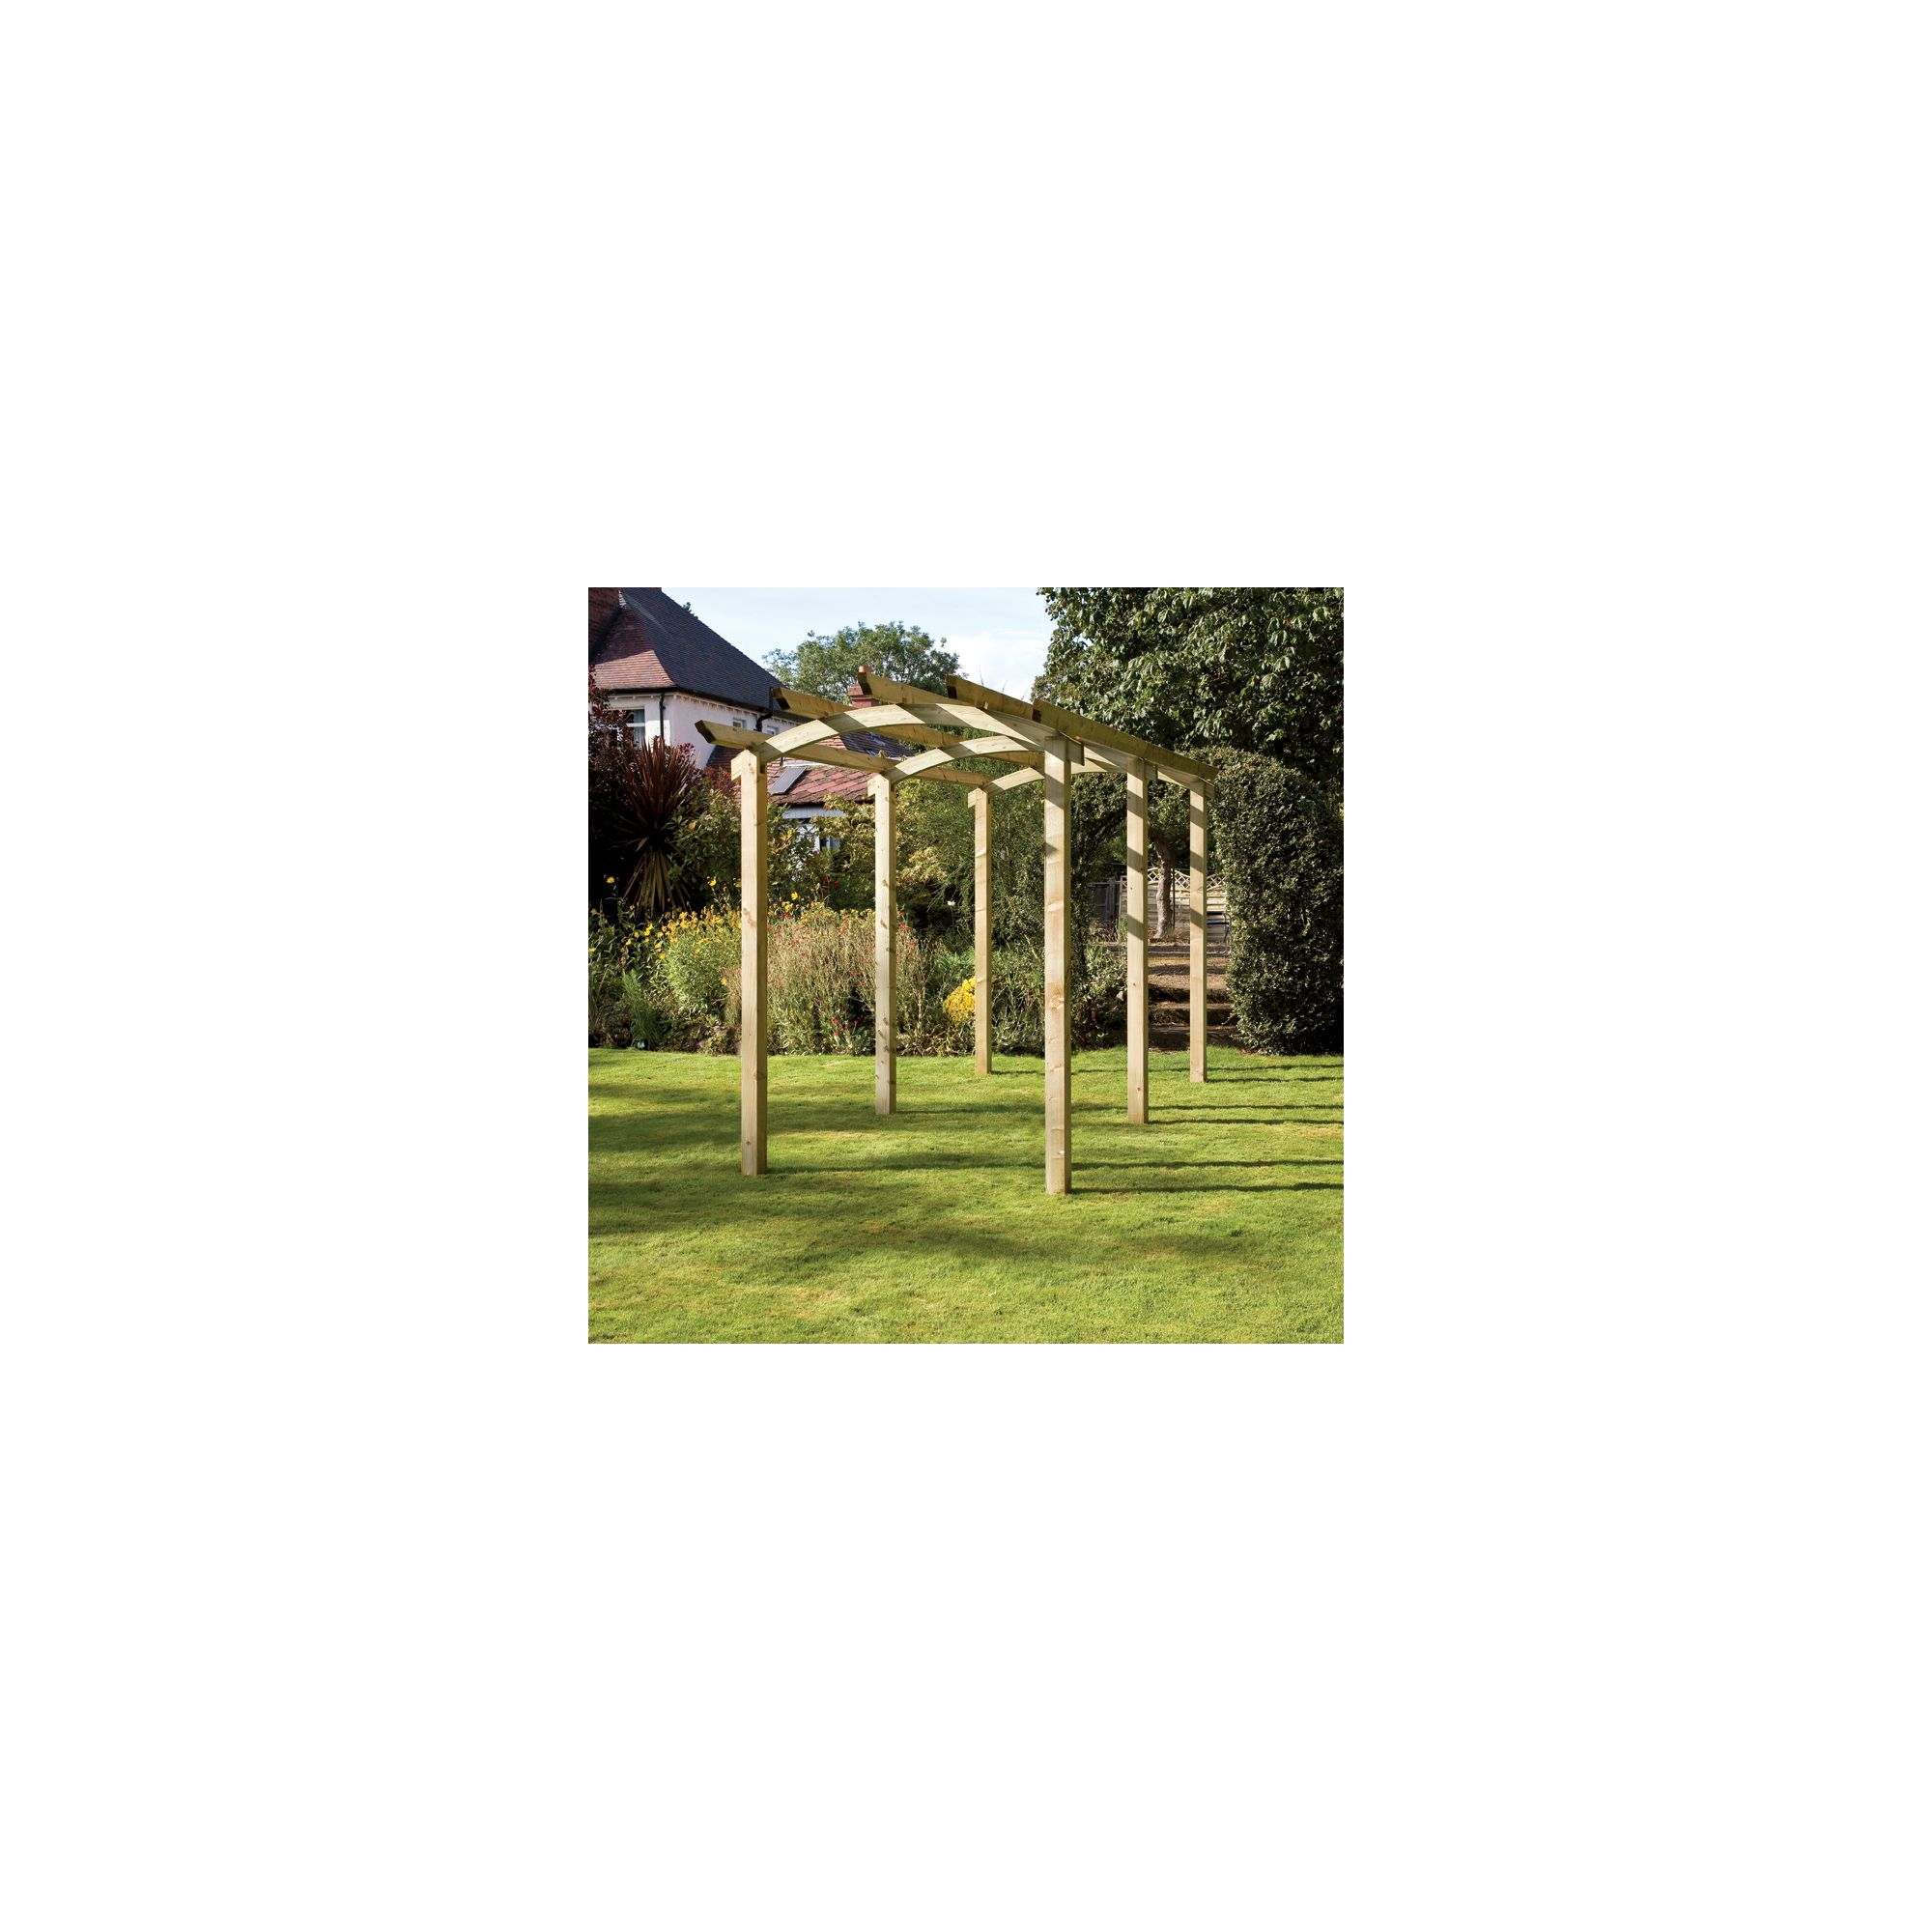 Brook Walk Pergola - Includes 6 bags of Metcrete for fixing posts into the ground at Tesco Direct